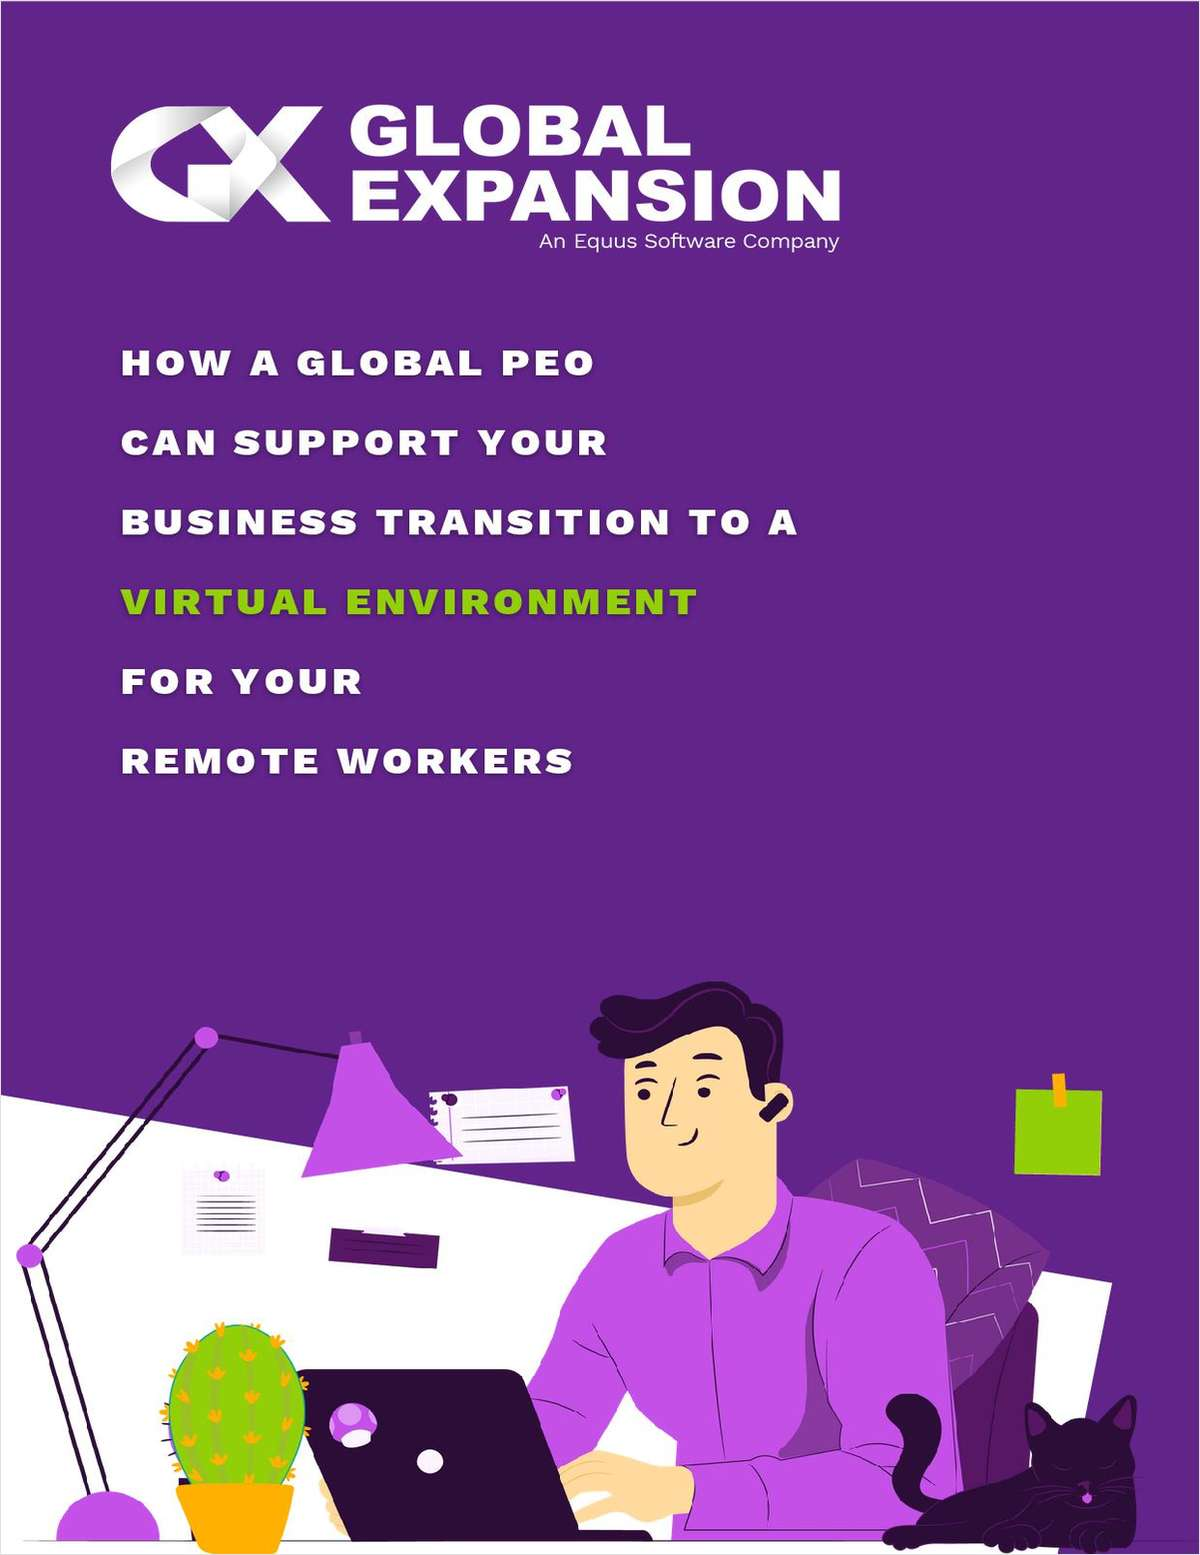 How A Global PEO Can Support Your Business Transition To A Virtual Environment For Your Remote Workers